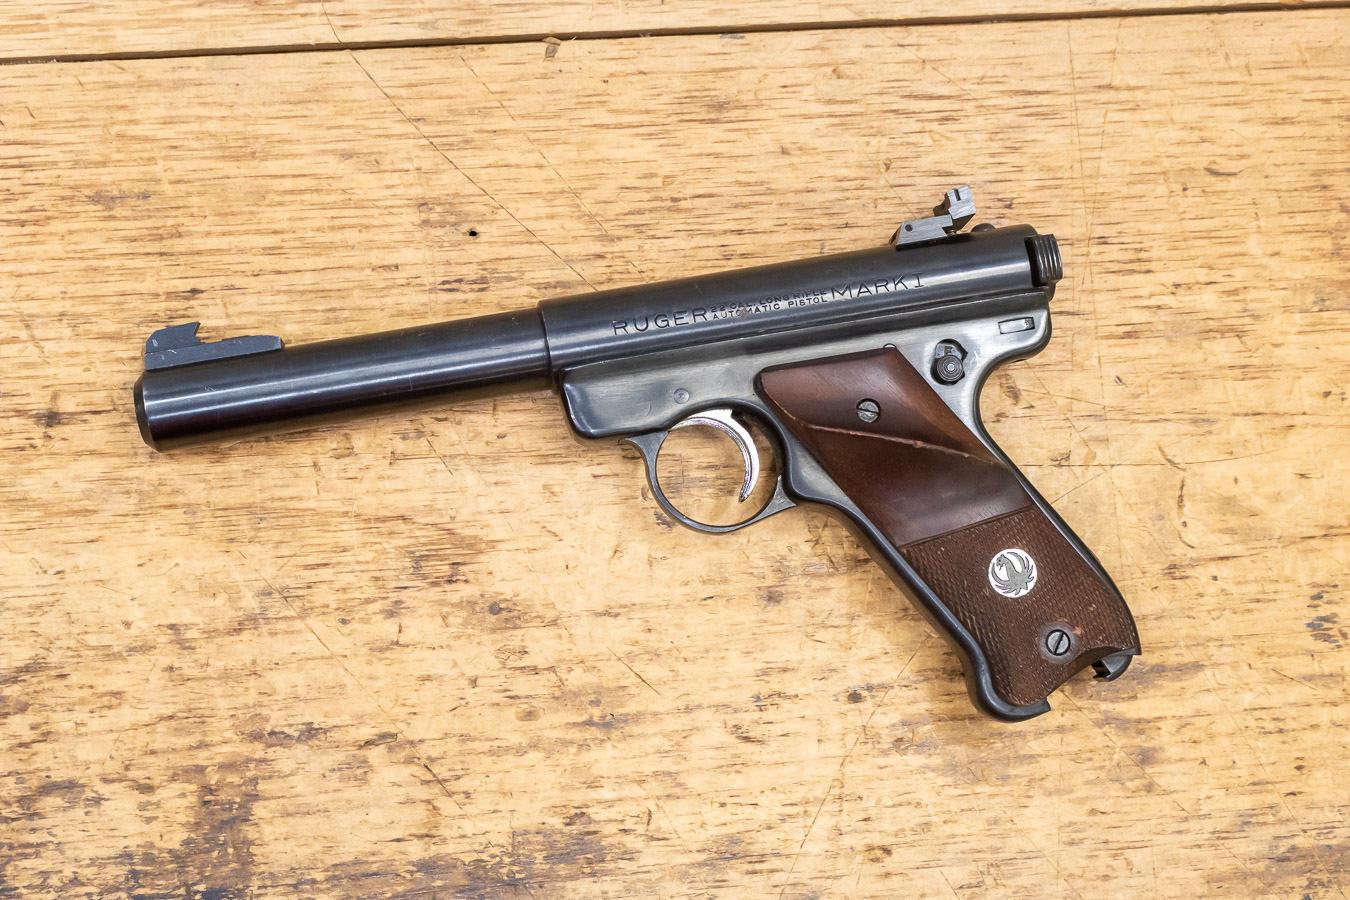 RUGER MARK I 22 LR USED TRADE-IN PISTOL